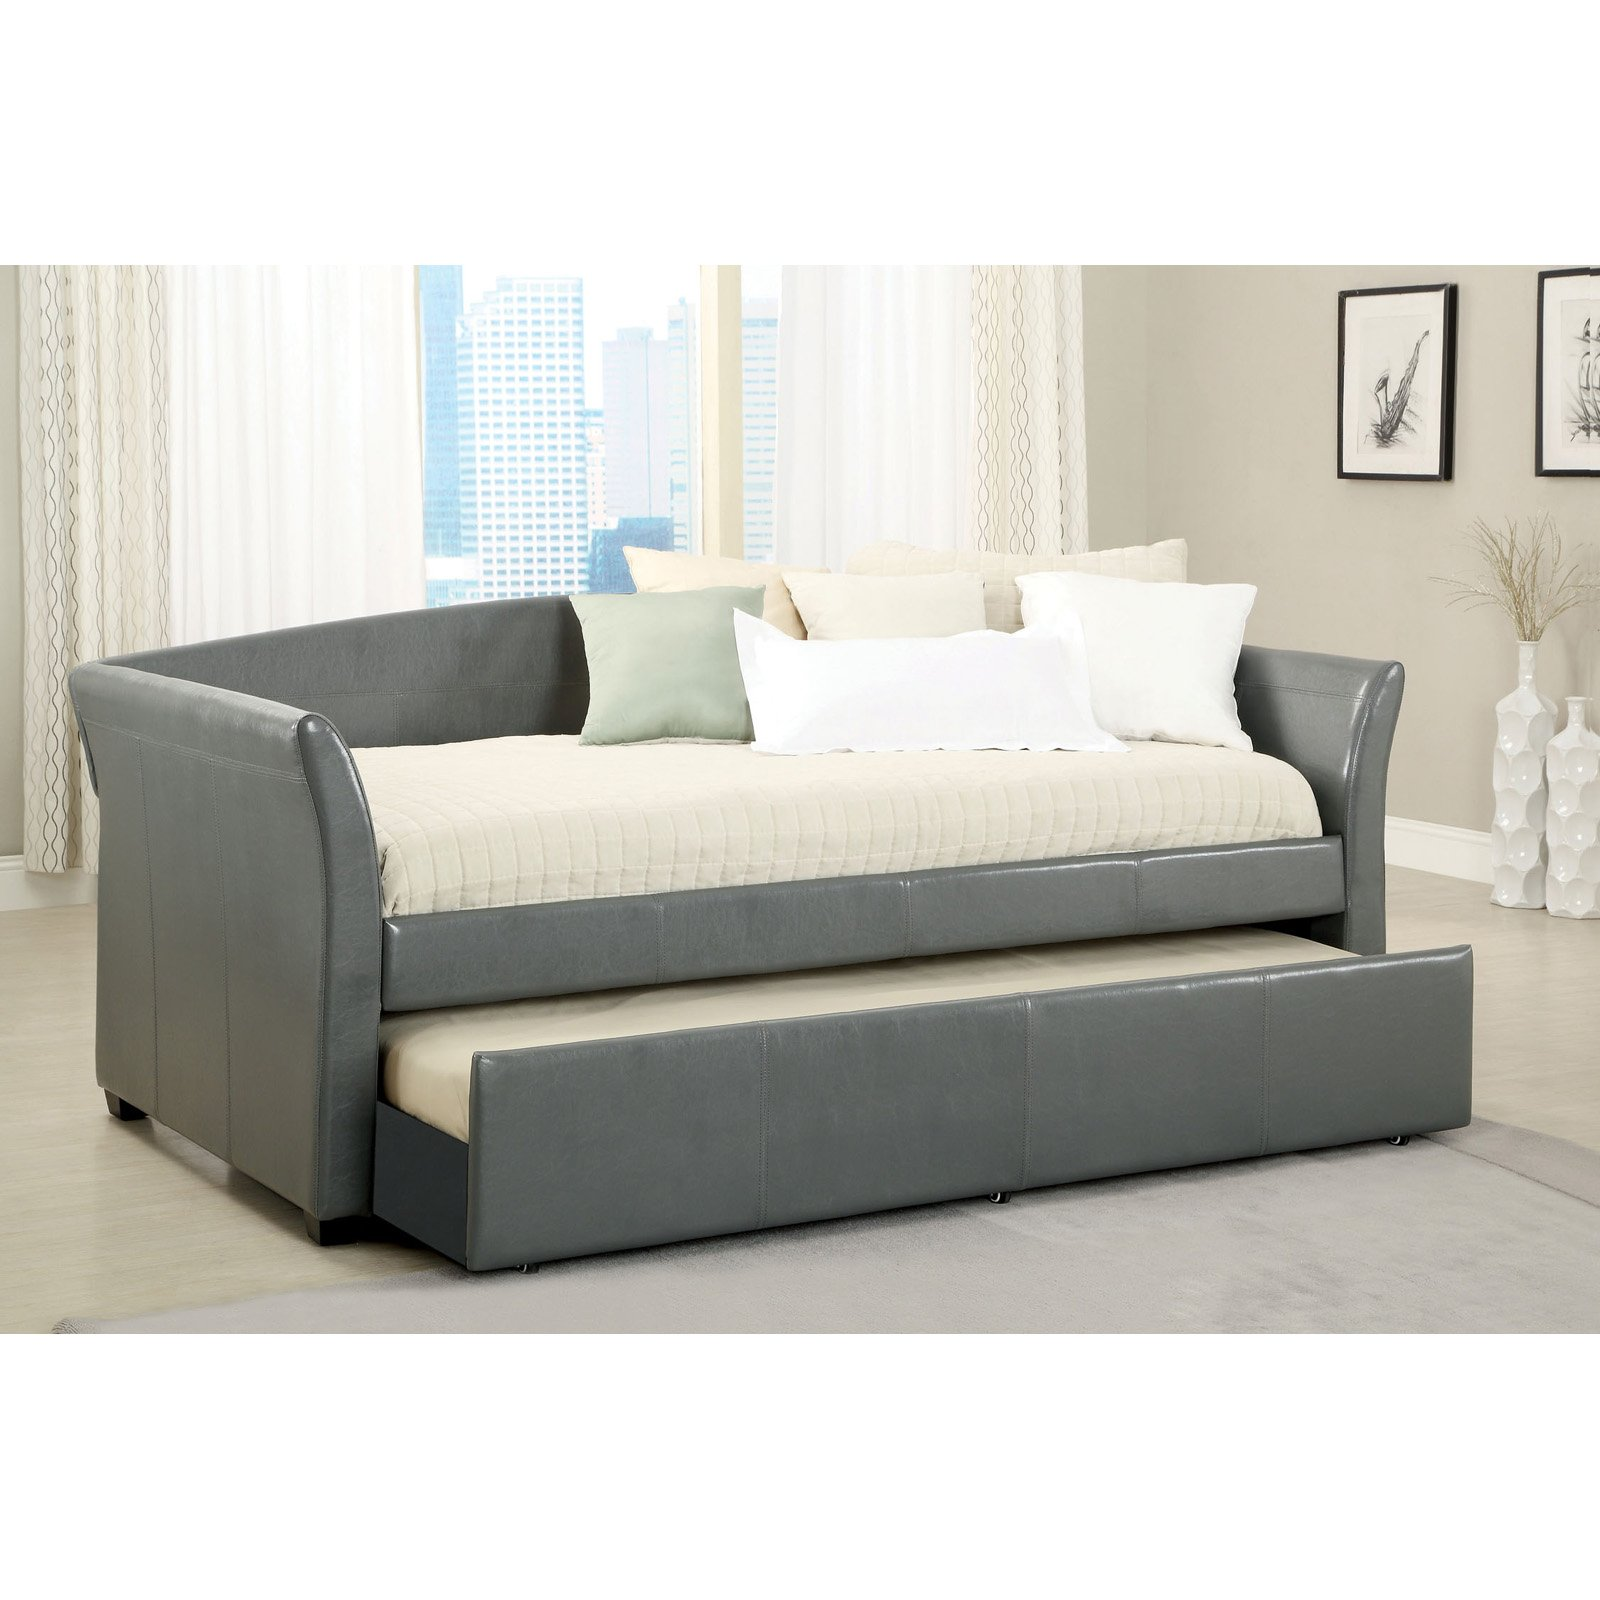 Fullsize Of Daybeds With Trundle